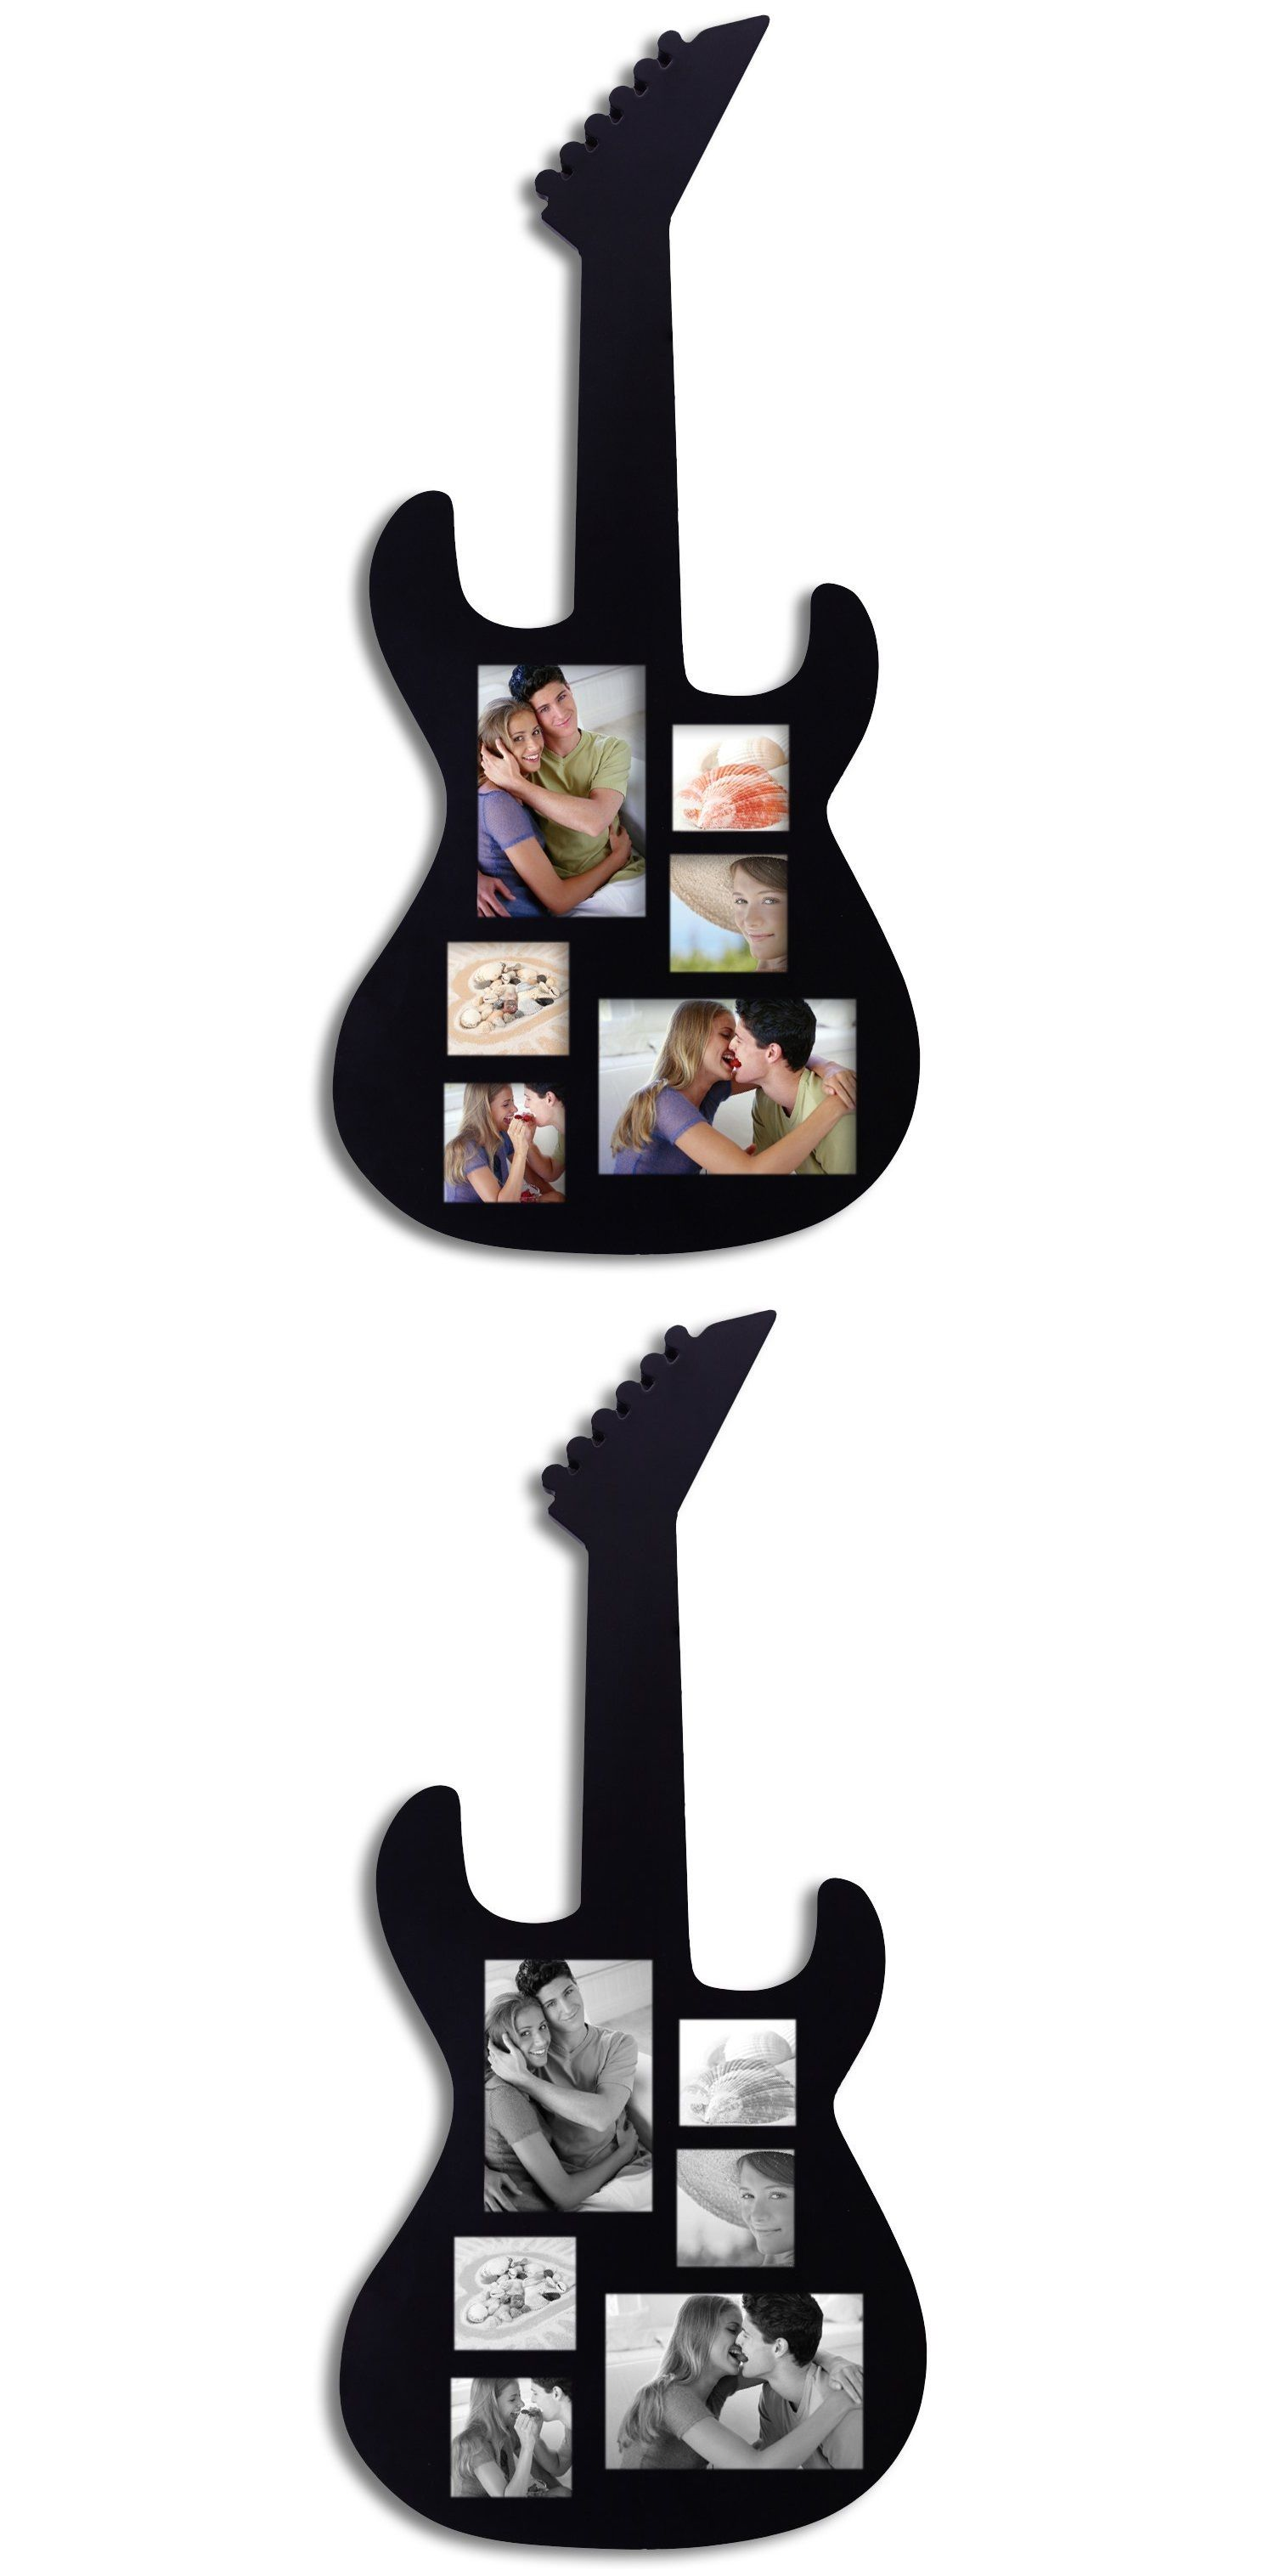 Black wood guitar collage picture photo frame collage pictures black wood guitar collage picture photo frame jeuxipadfo Gallery